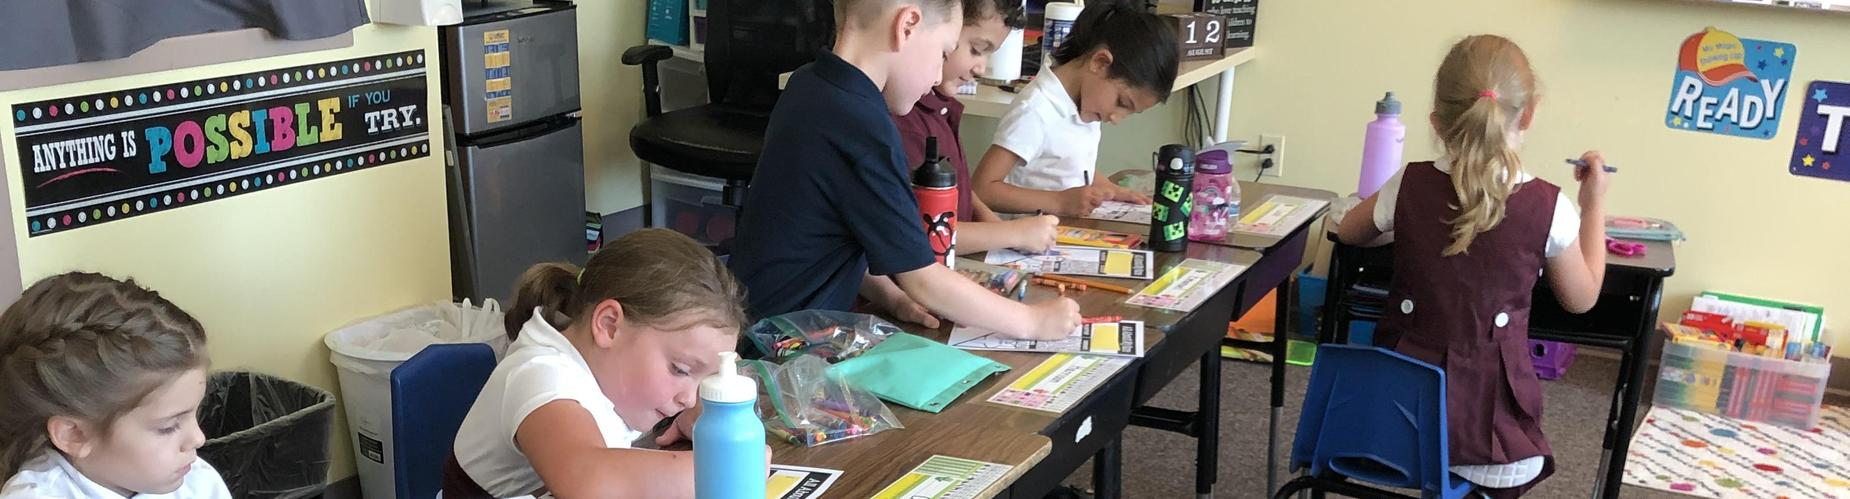 Students engaged in activity image